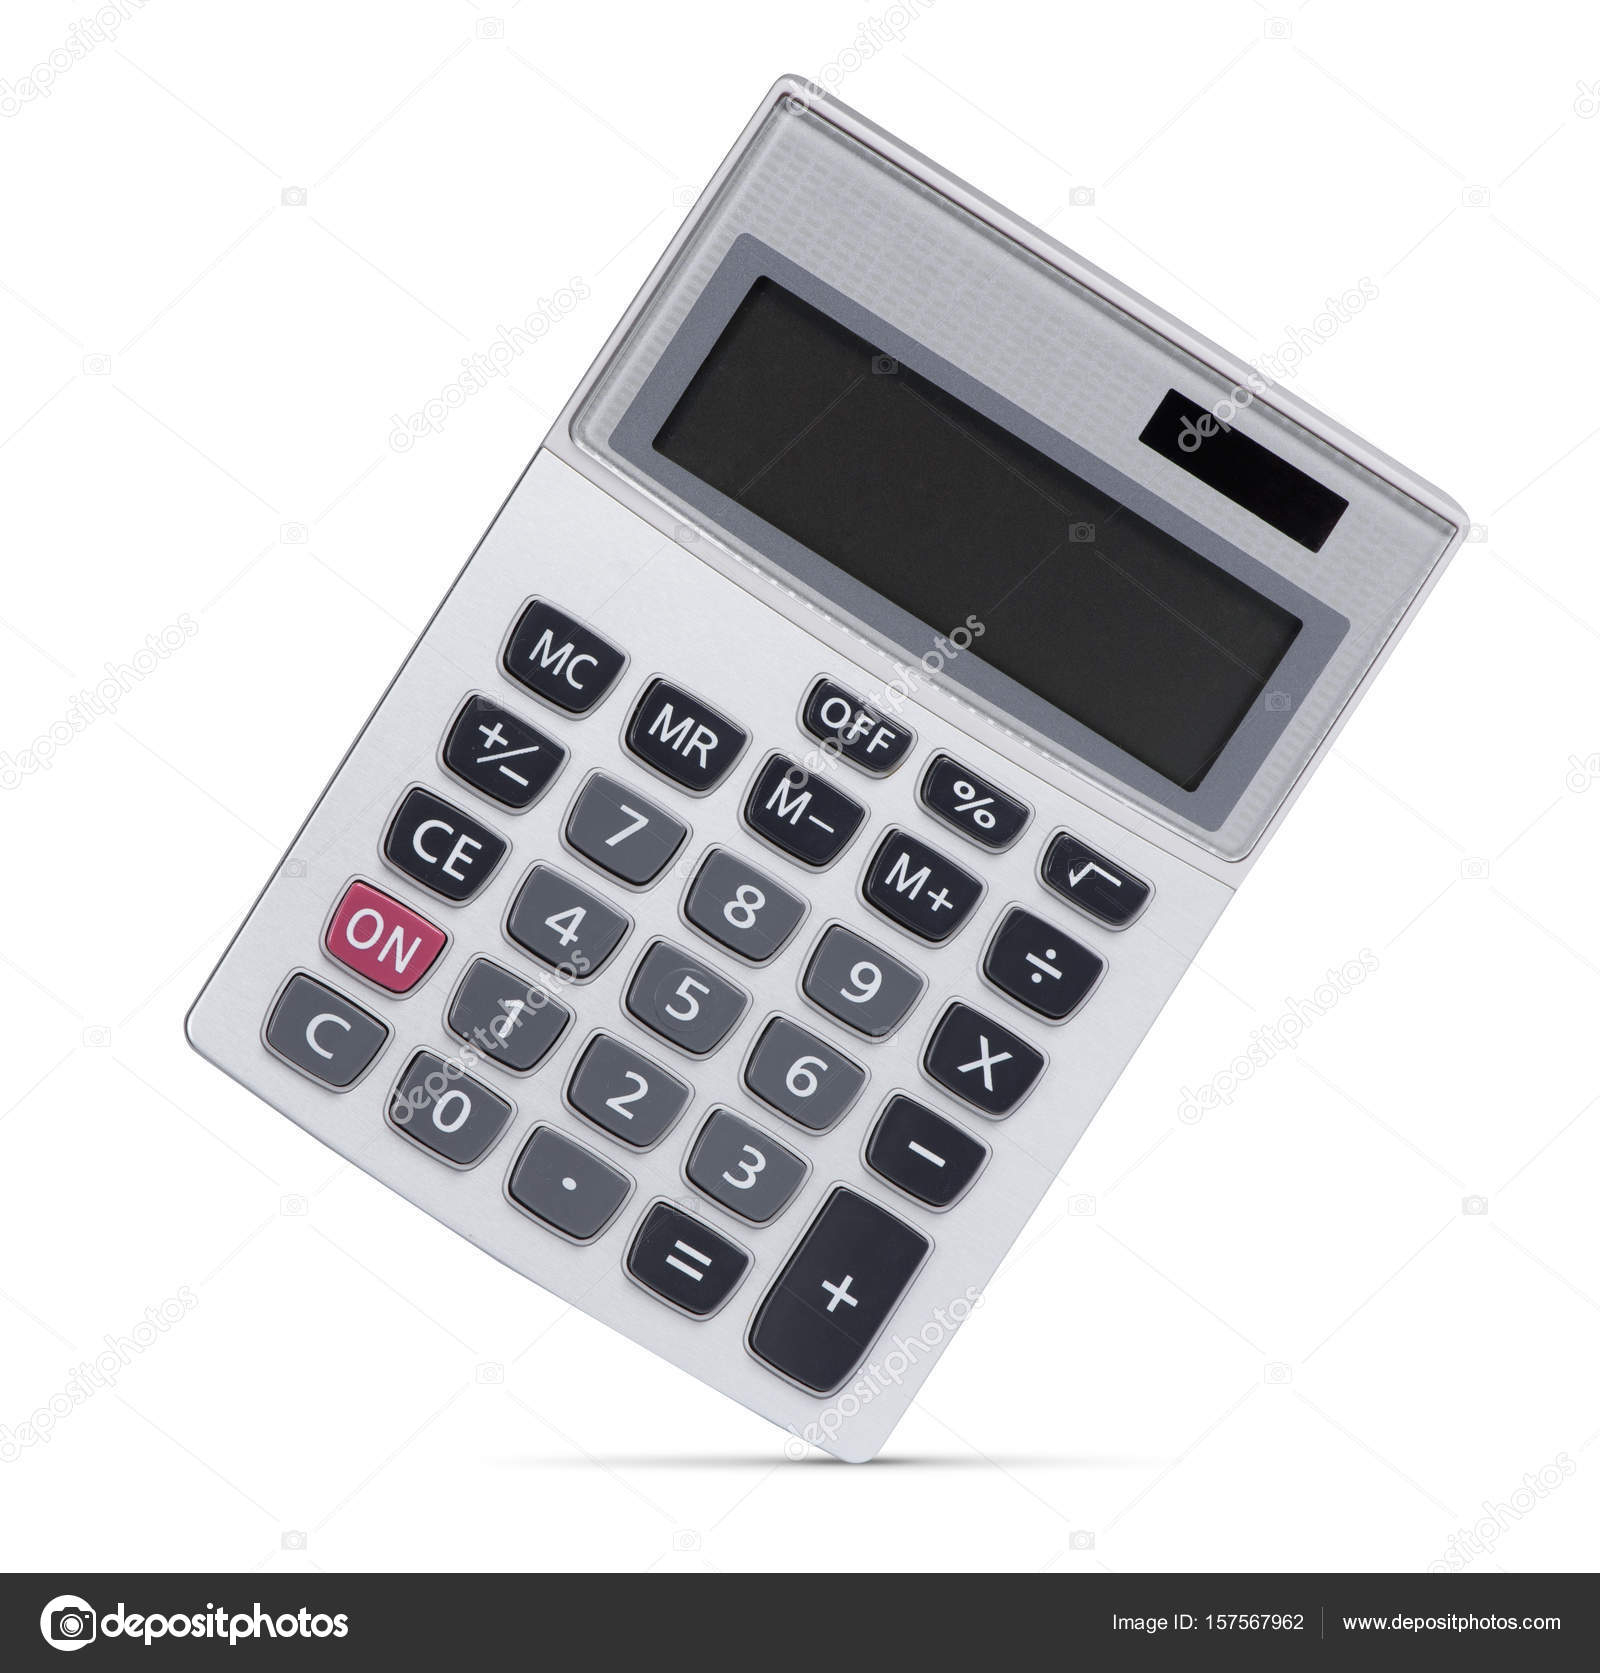 Depo Calculator 2021